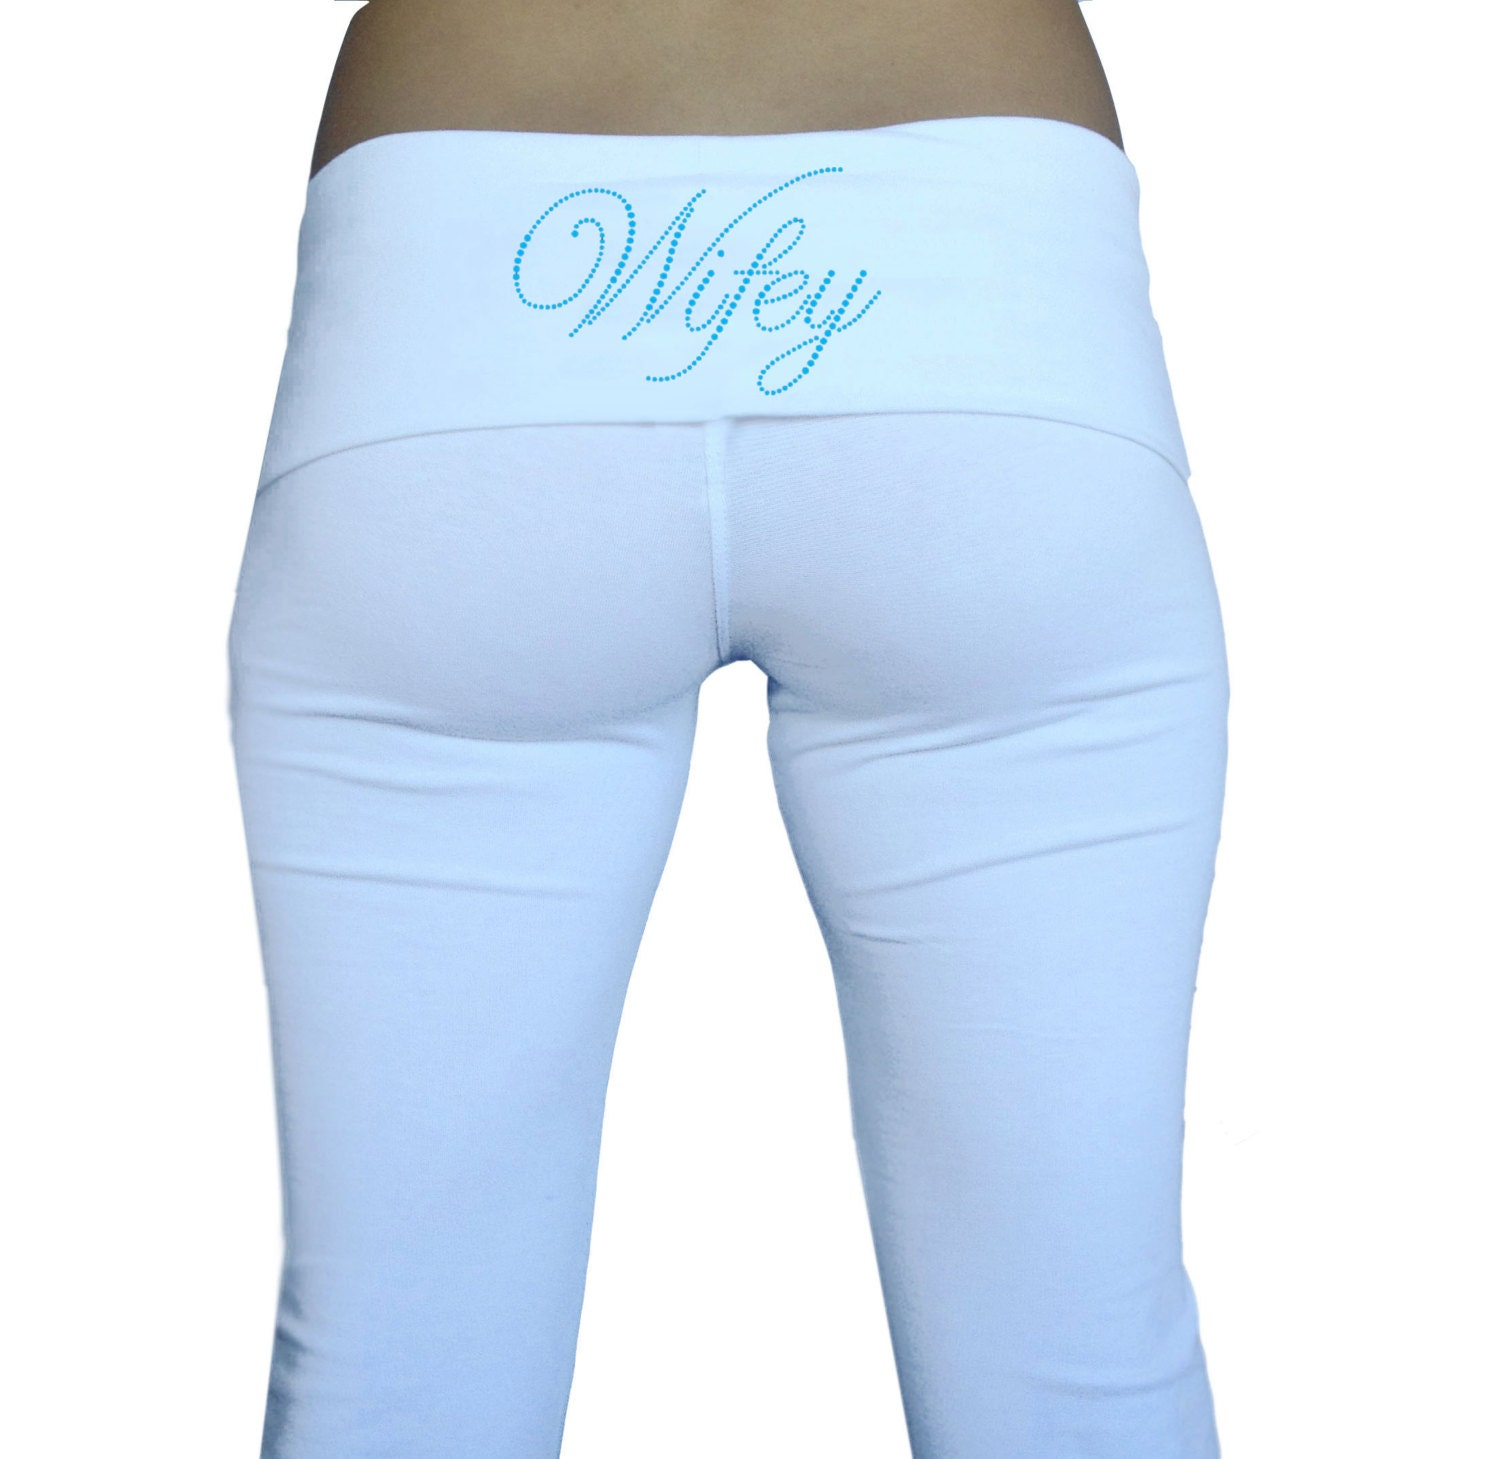 Buy White Yoga Pants - White Pants 2016